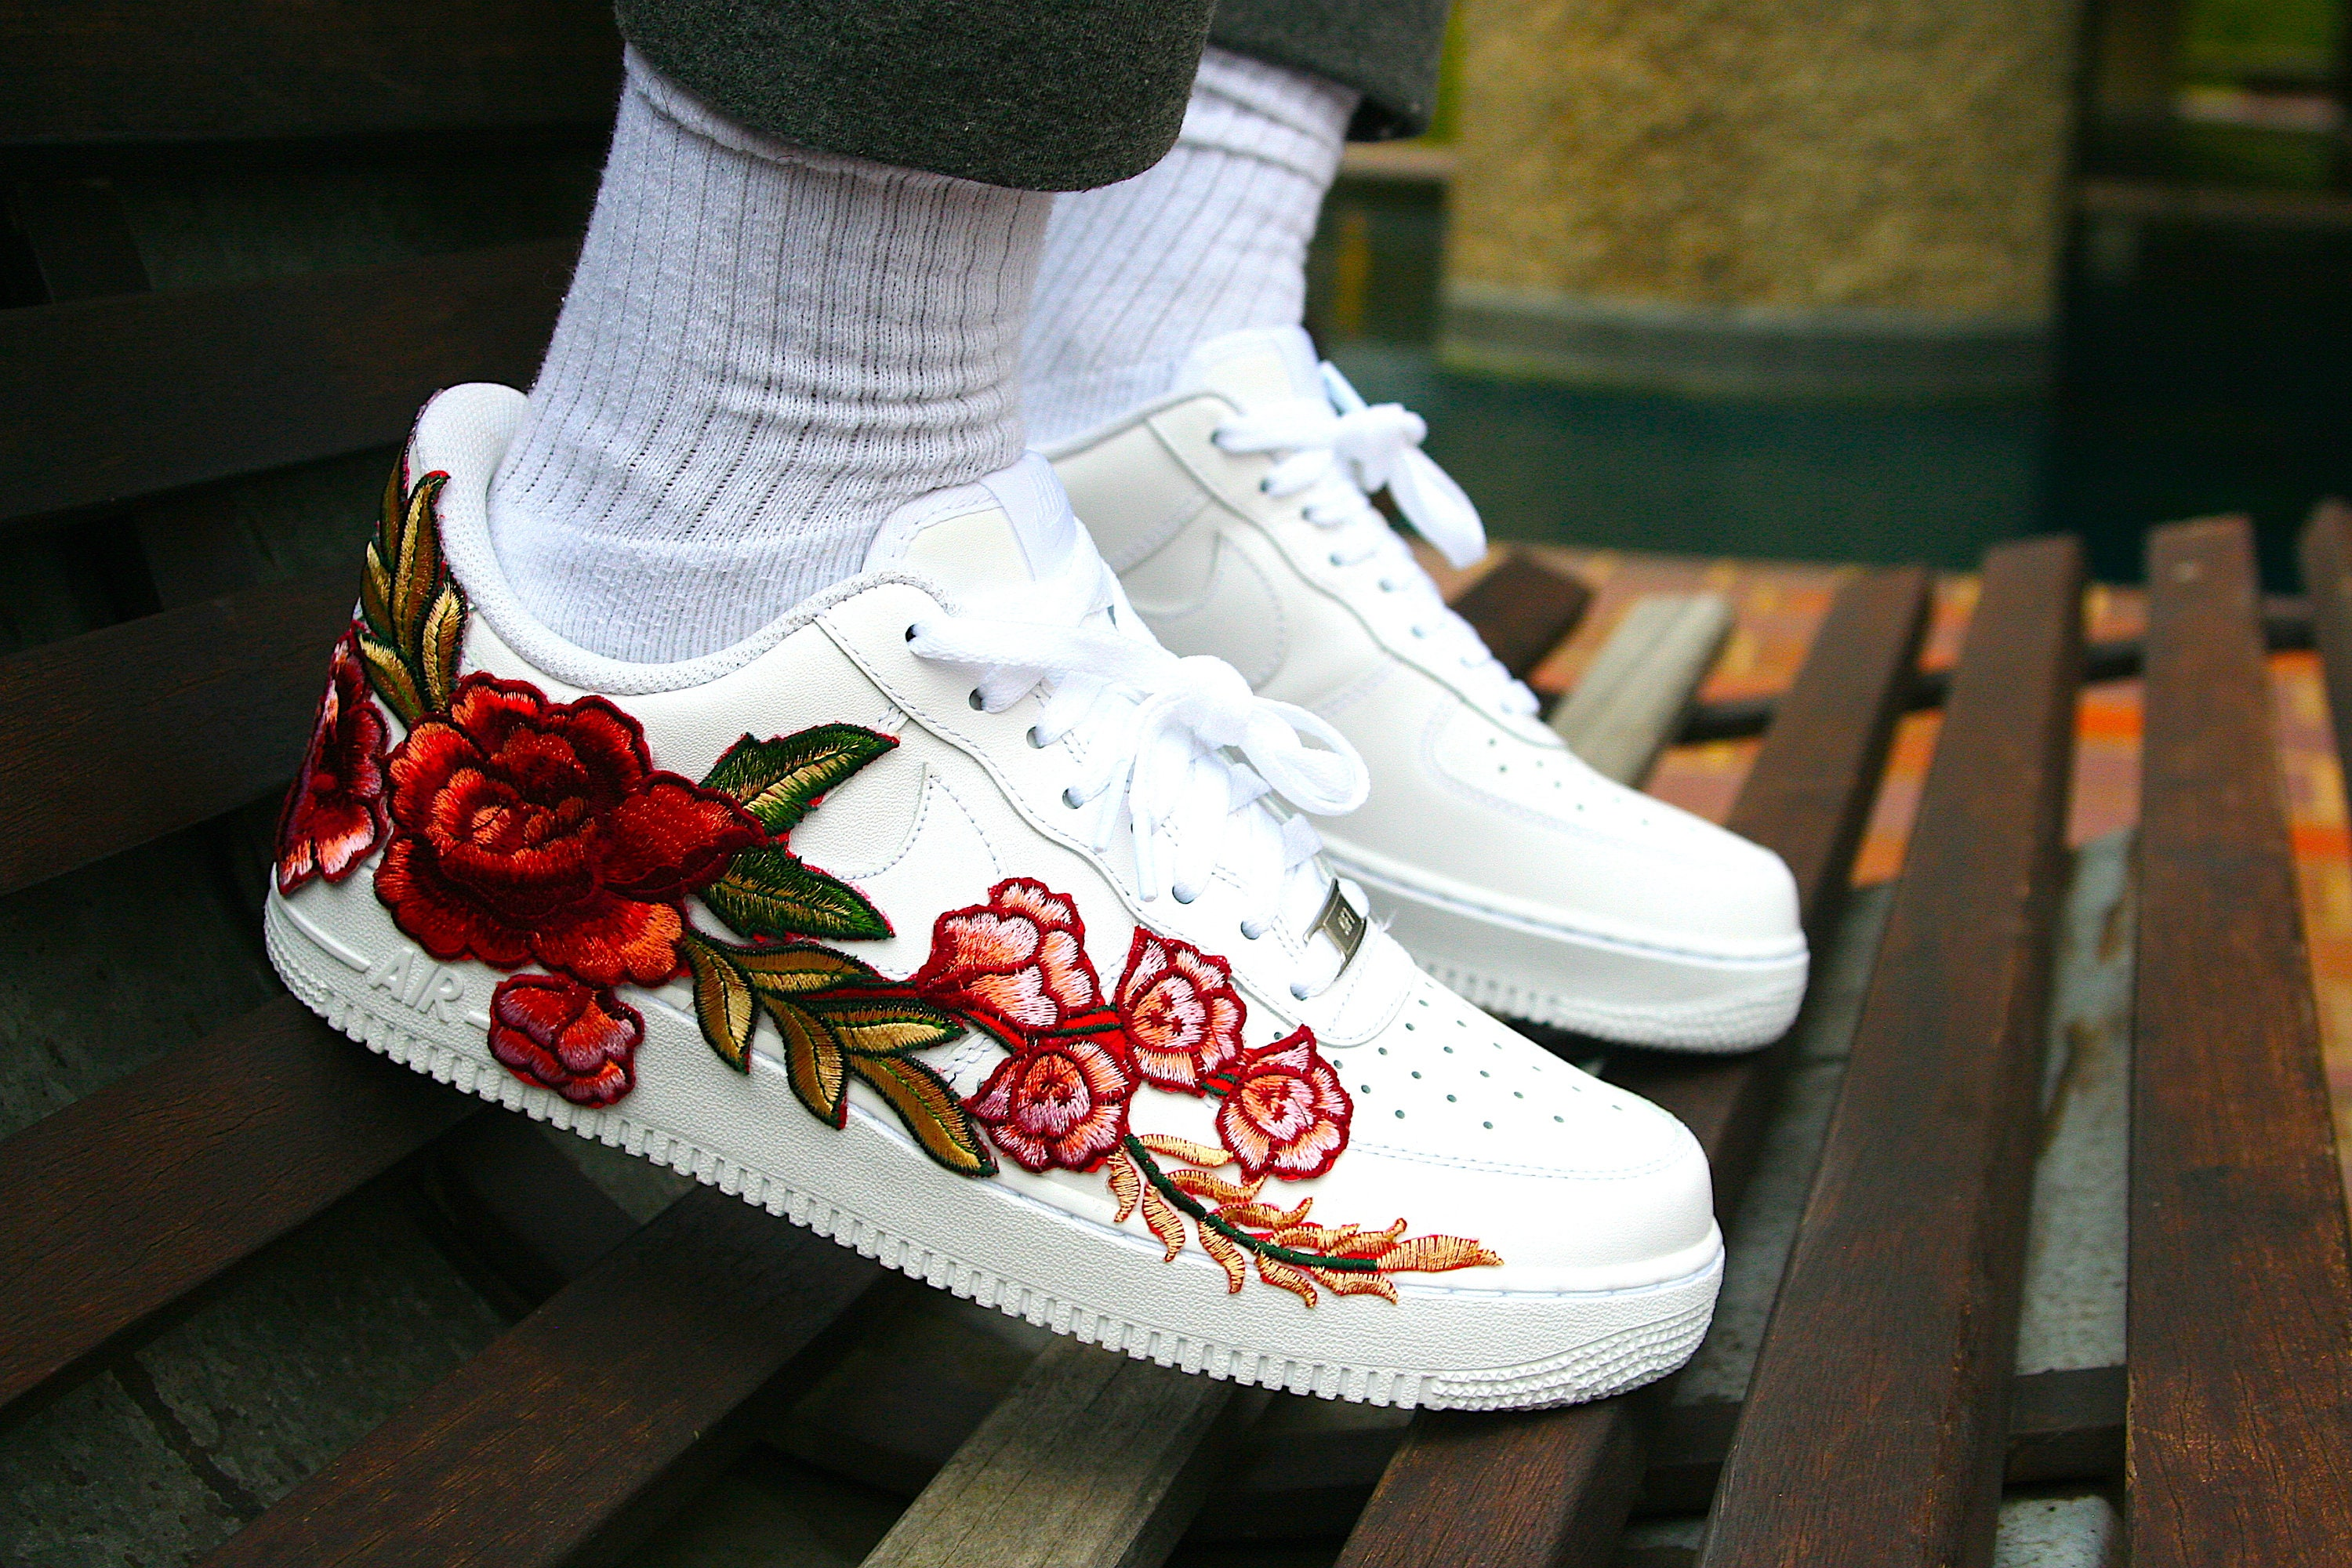 Custom Nike Air Force 1 (Blue Rose), Blue rose AF1, Blue Rose Custom, Embroidery AF1, Custom Air Forces, Blue Rose Embroidery Trainers